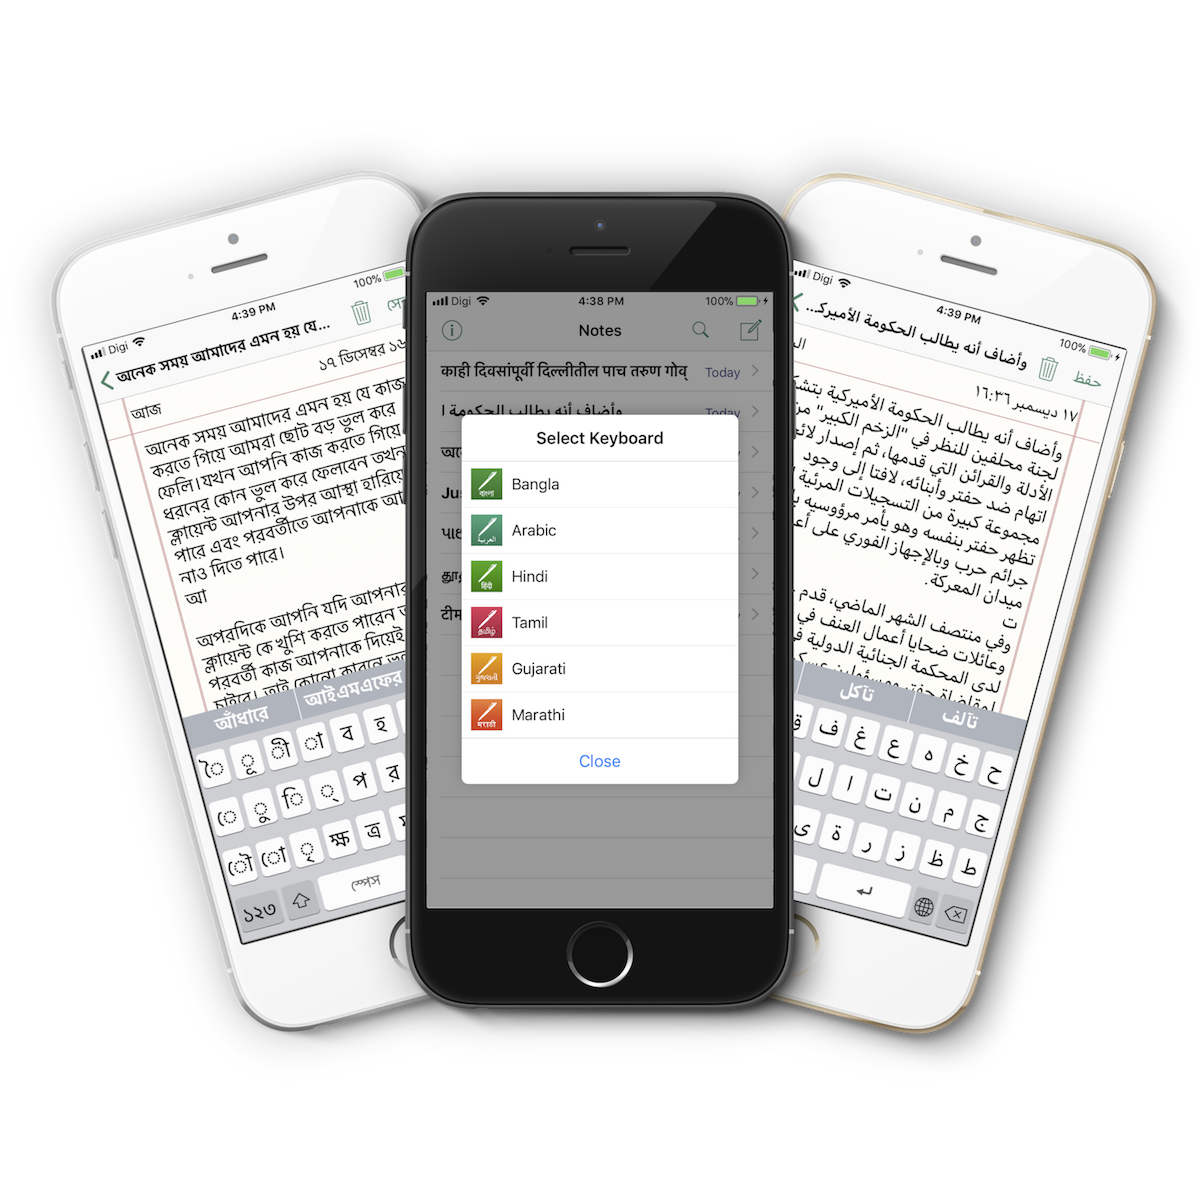 Elitenote - A New Note Taking App released for iPhone, iPad Image